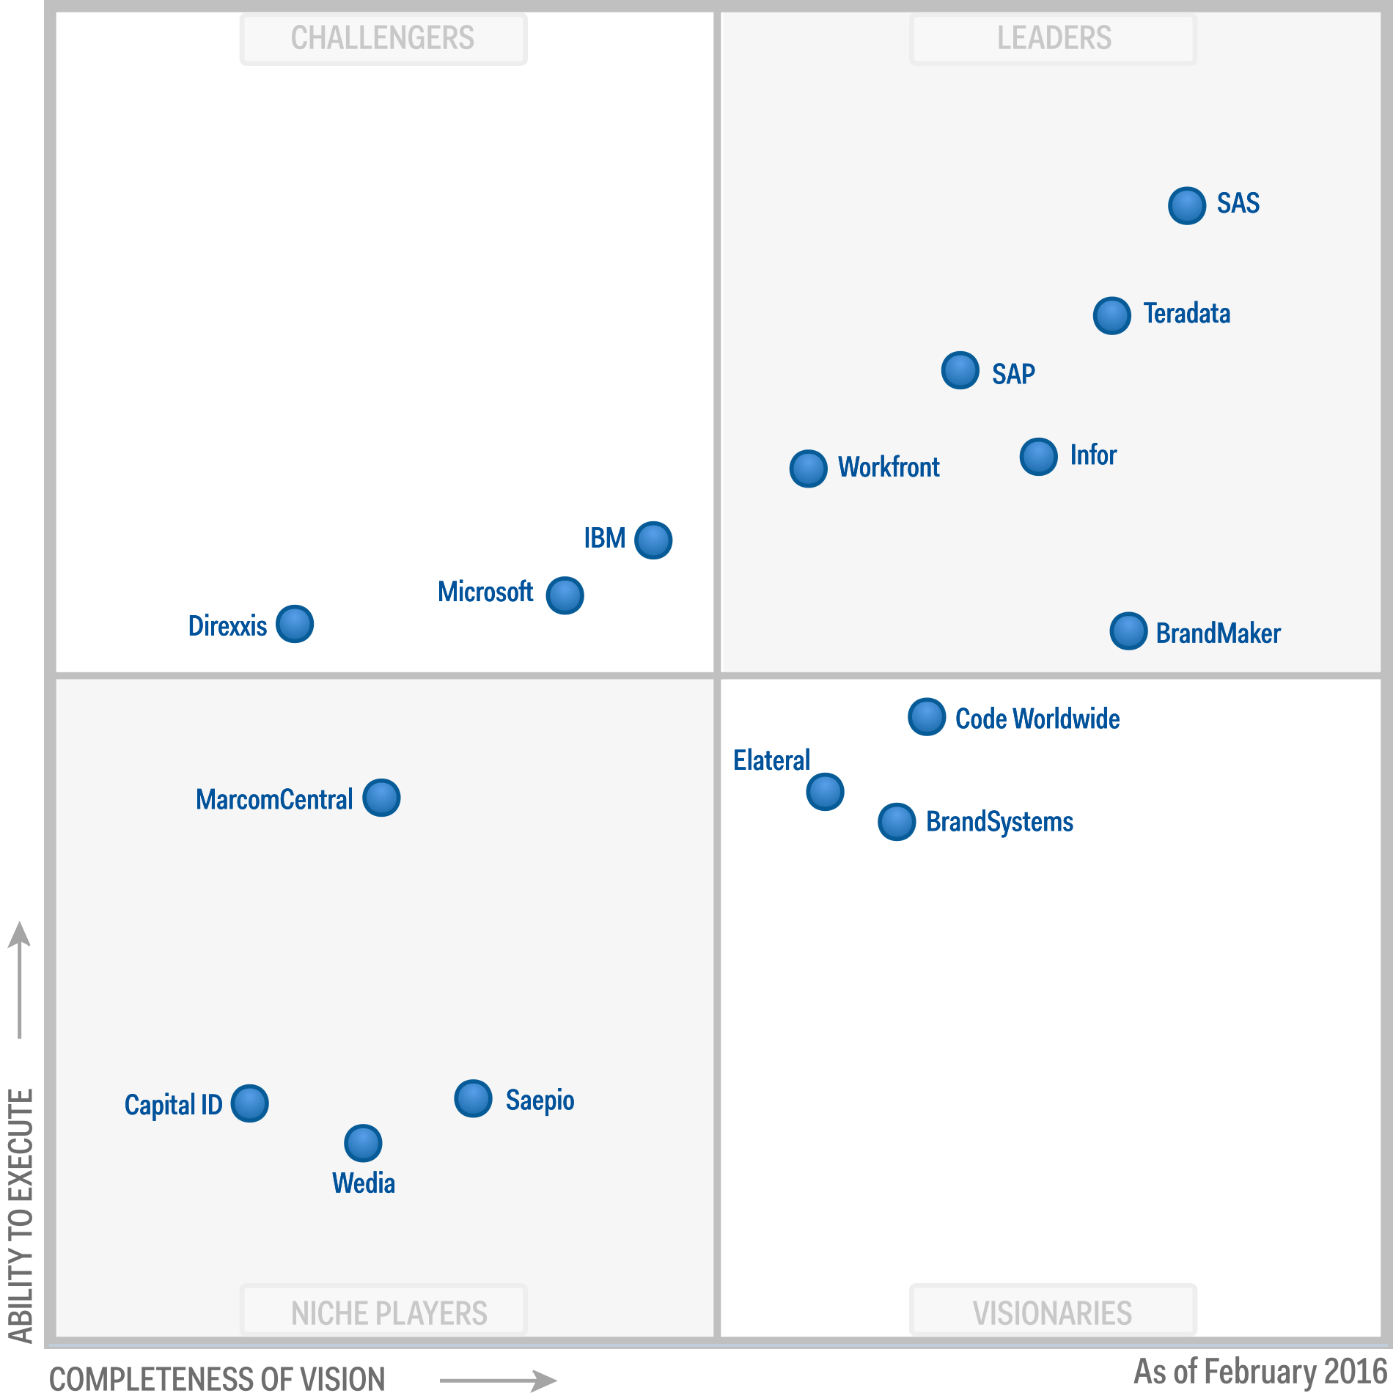 Magic Quadrant for Marketing Resource Management 2016 (G00274973)